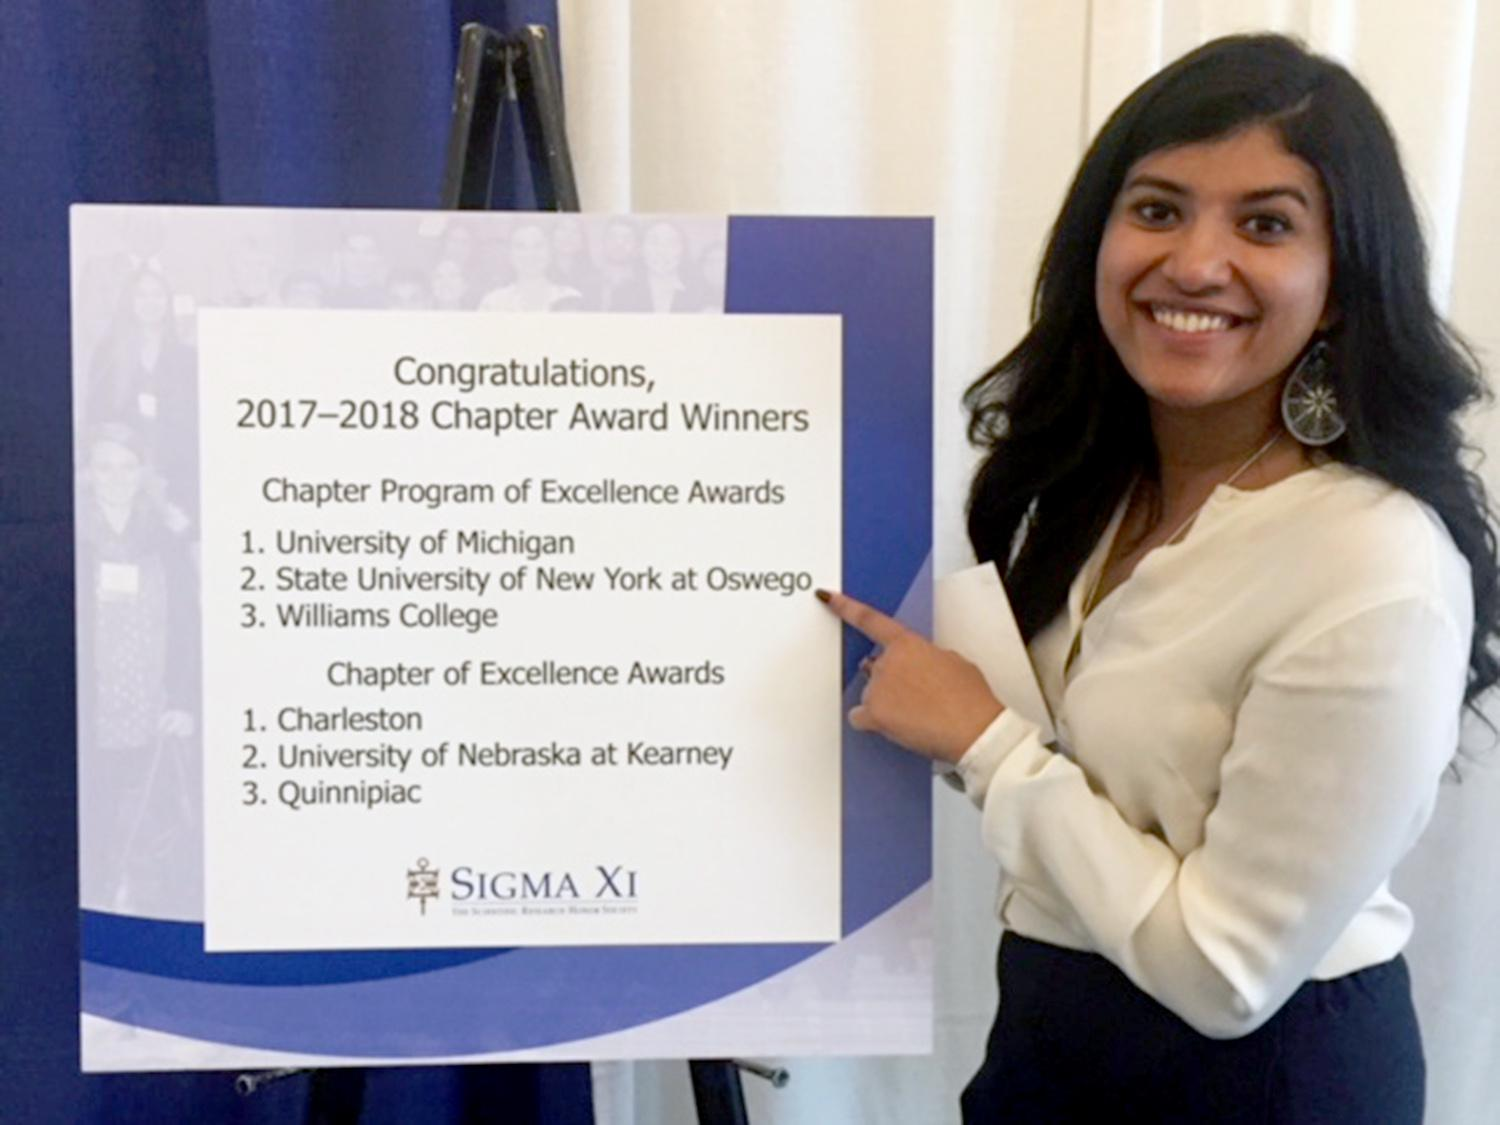 Manna Job shows pride in college's research accomplishments at Sigma Xi international conference